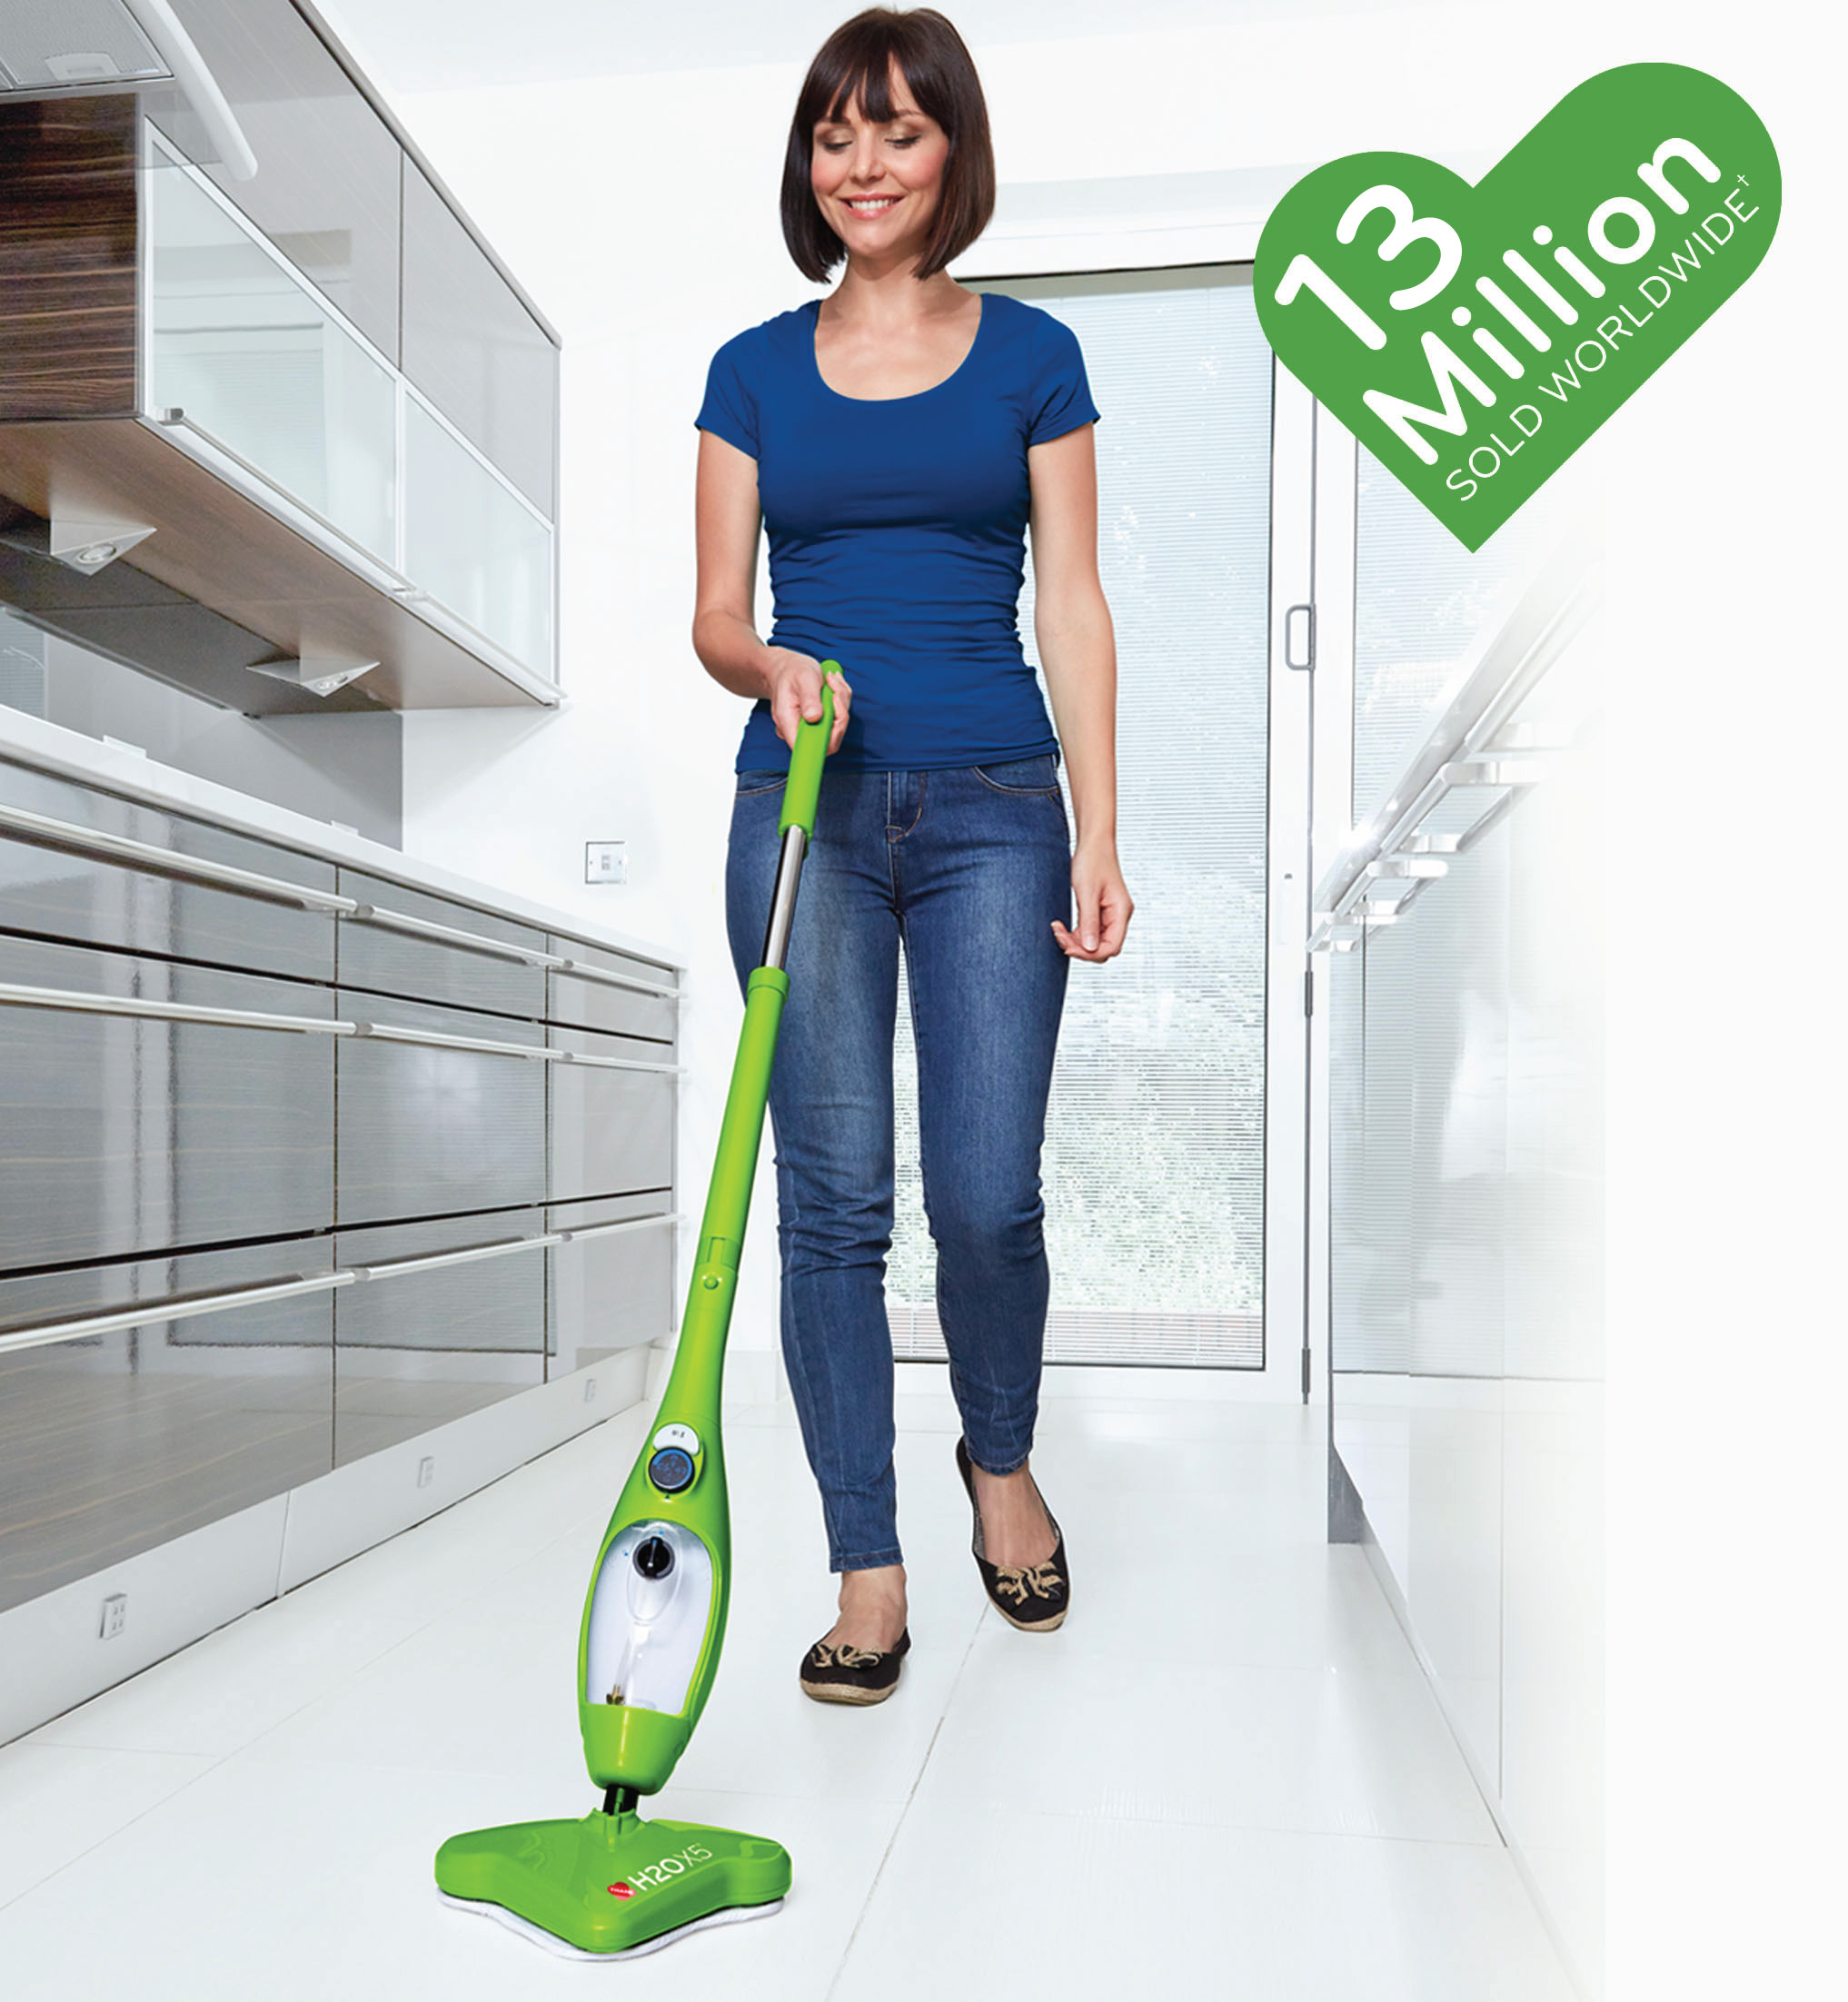 A woman cleaning the floor with a H2O X5